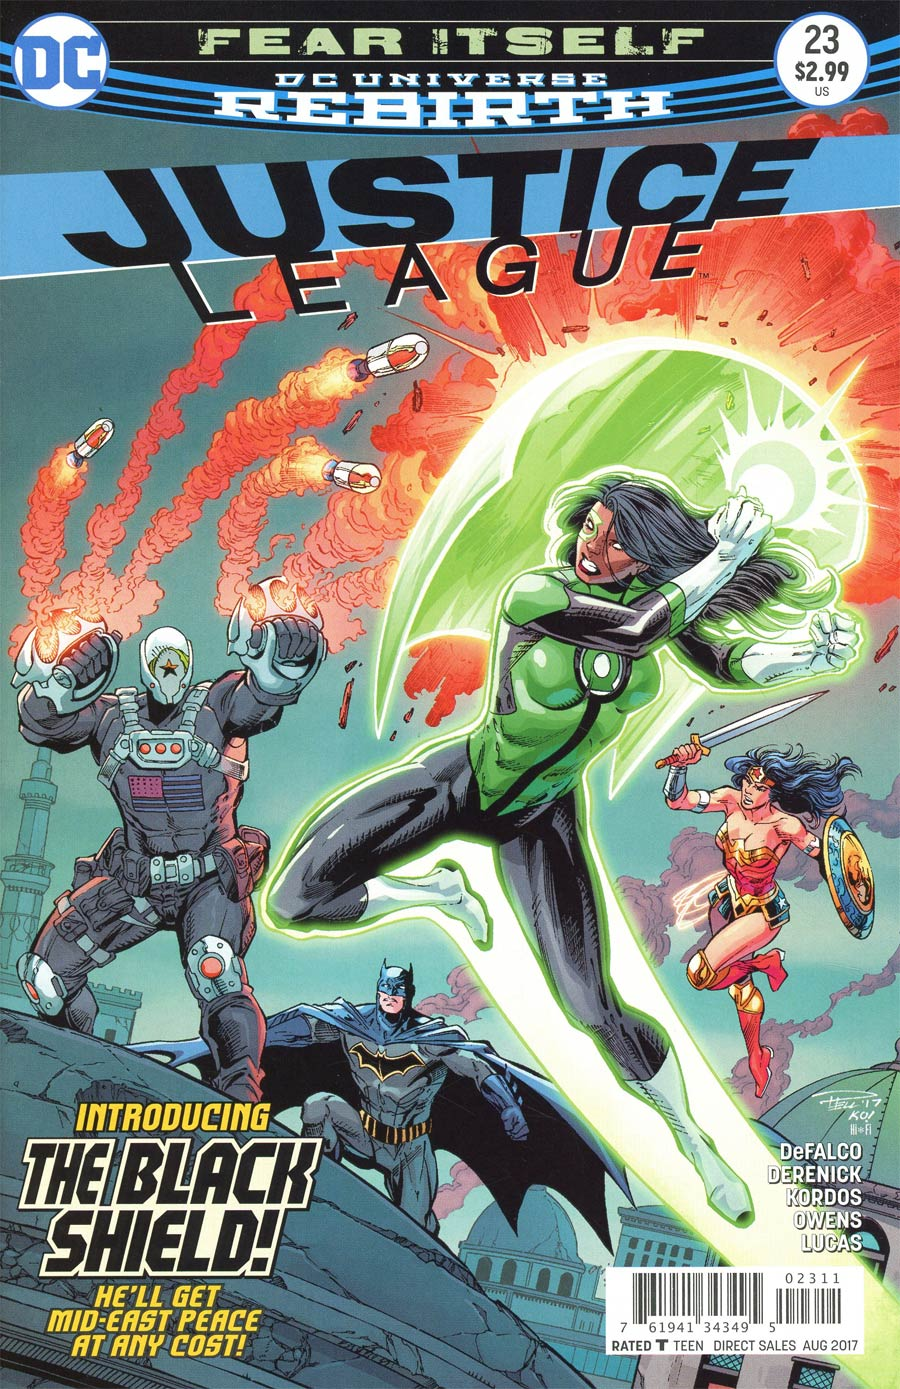 Justice League 23 - 23 - cover #1